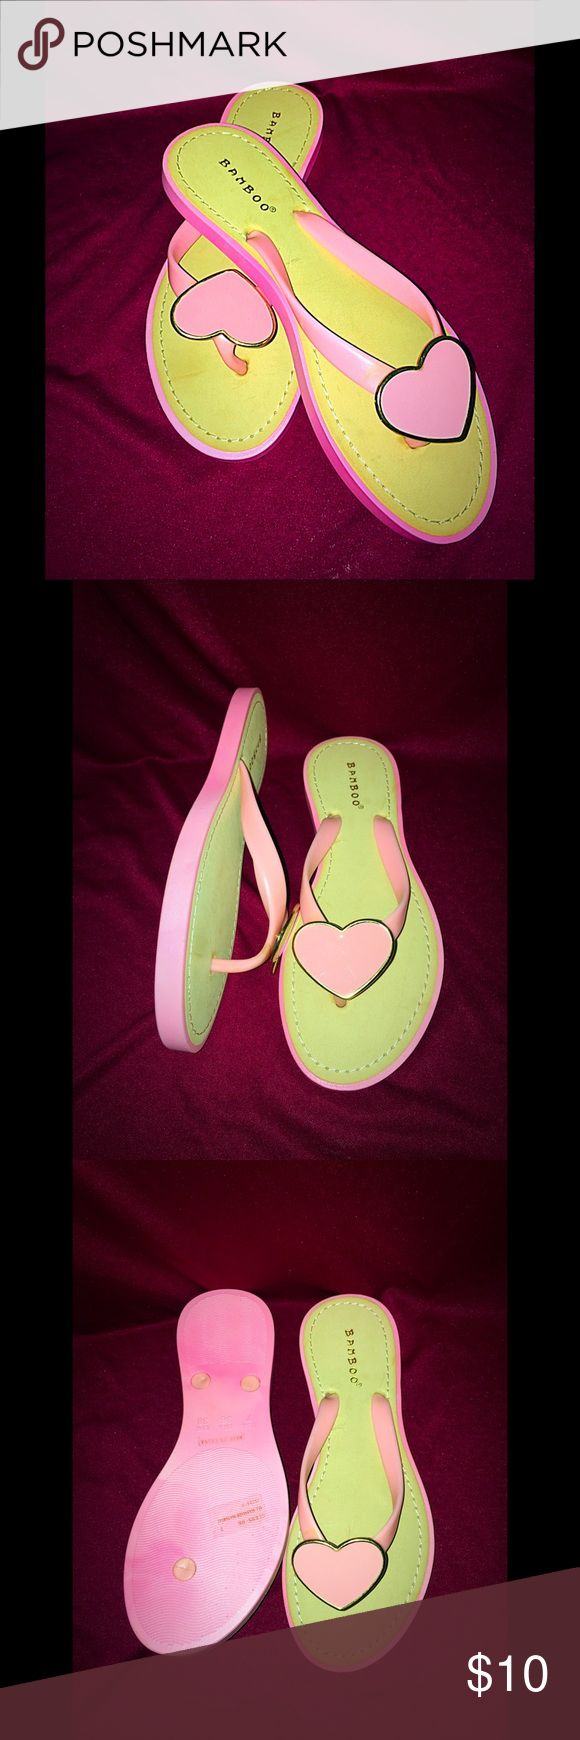 Final price (unless bundled) Heart flip flops Cute heart designed flip flops! Perfect for beach, chilling by the pool or just relaxing or shopping! Size: 7 Shoes Sandals